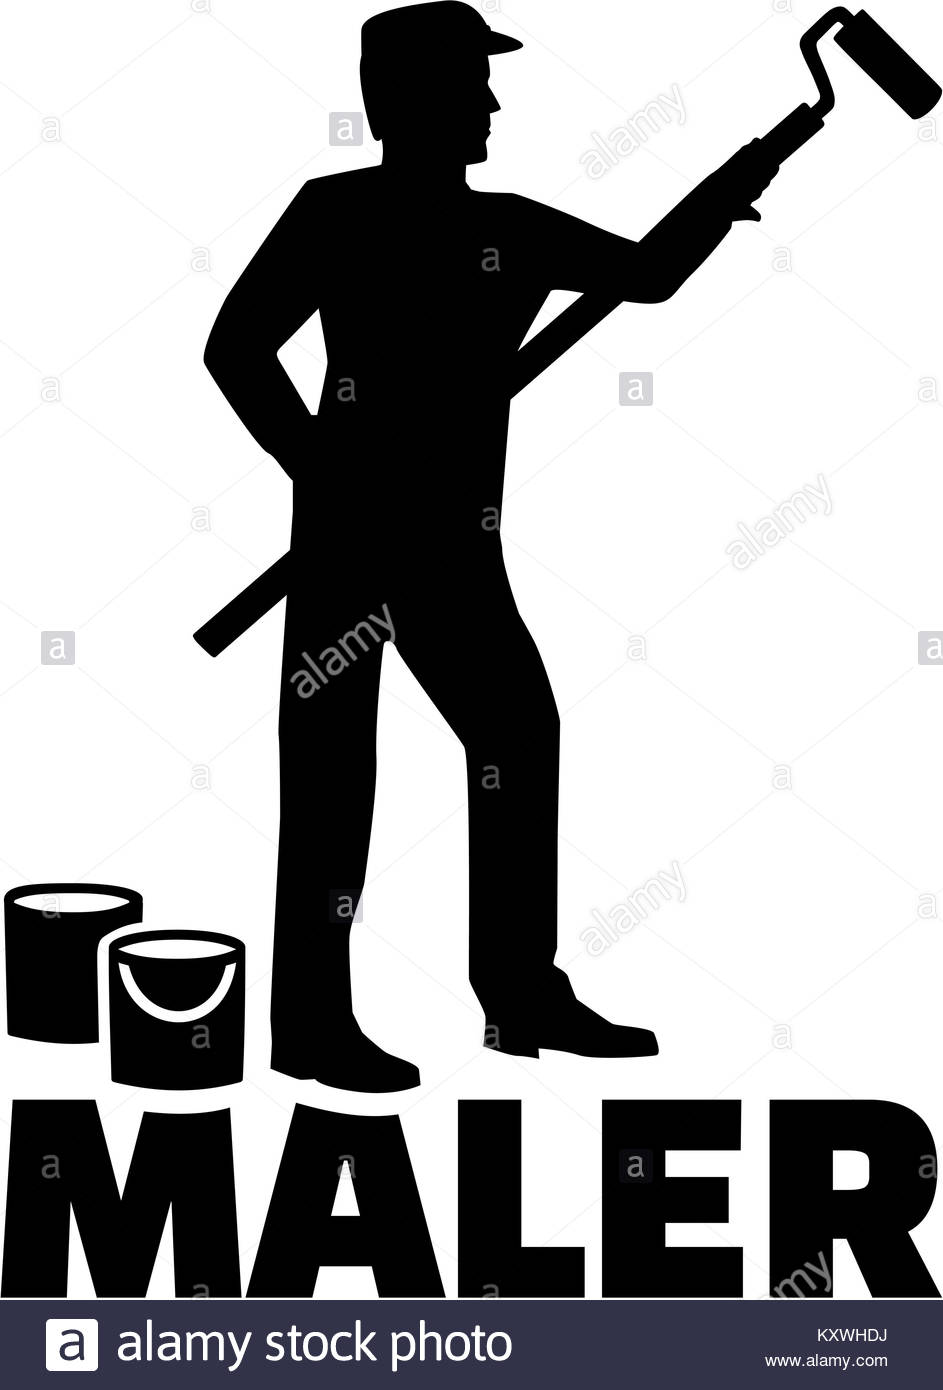 943x1390 Painter Silhouette With German Job Title Stock Photo 171436878